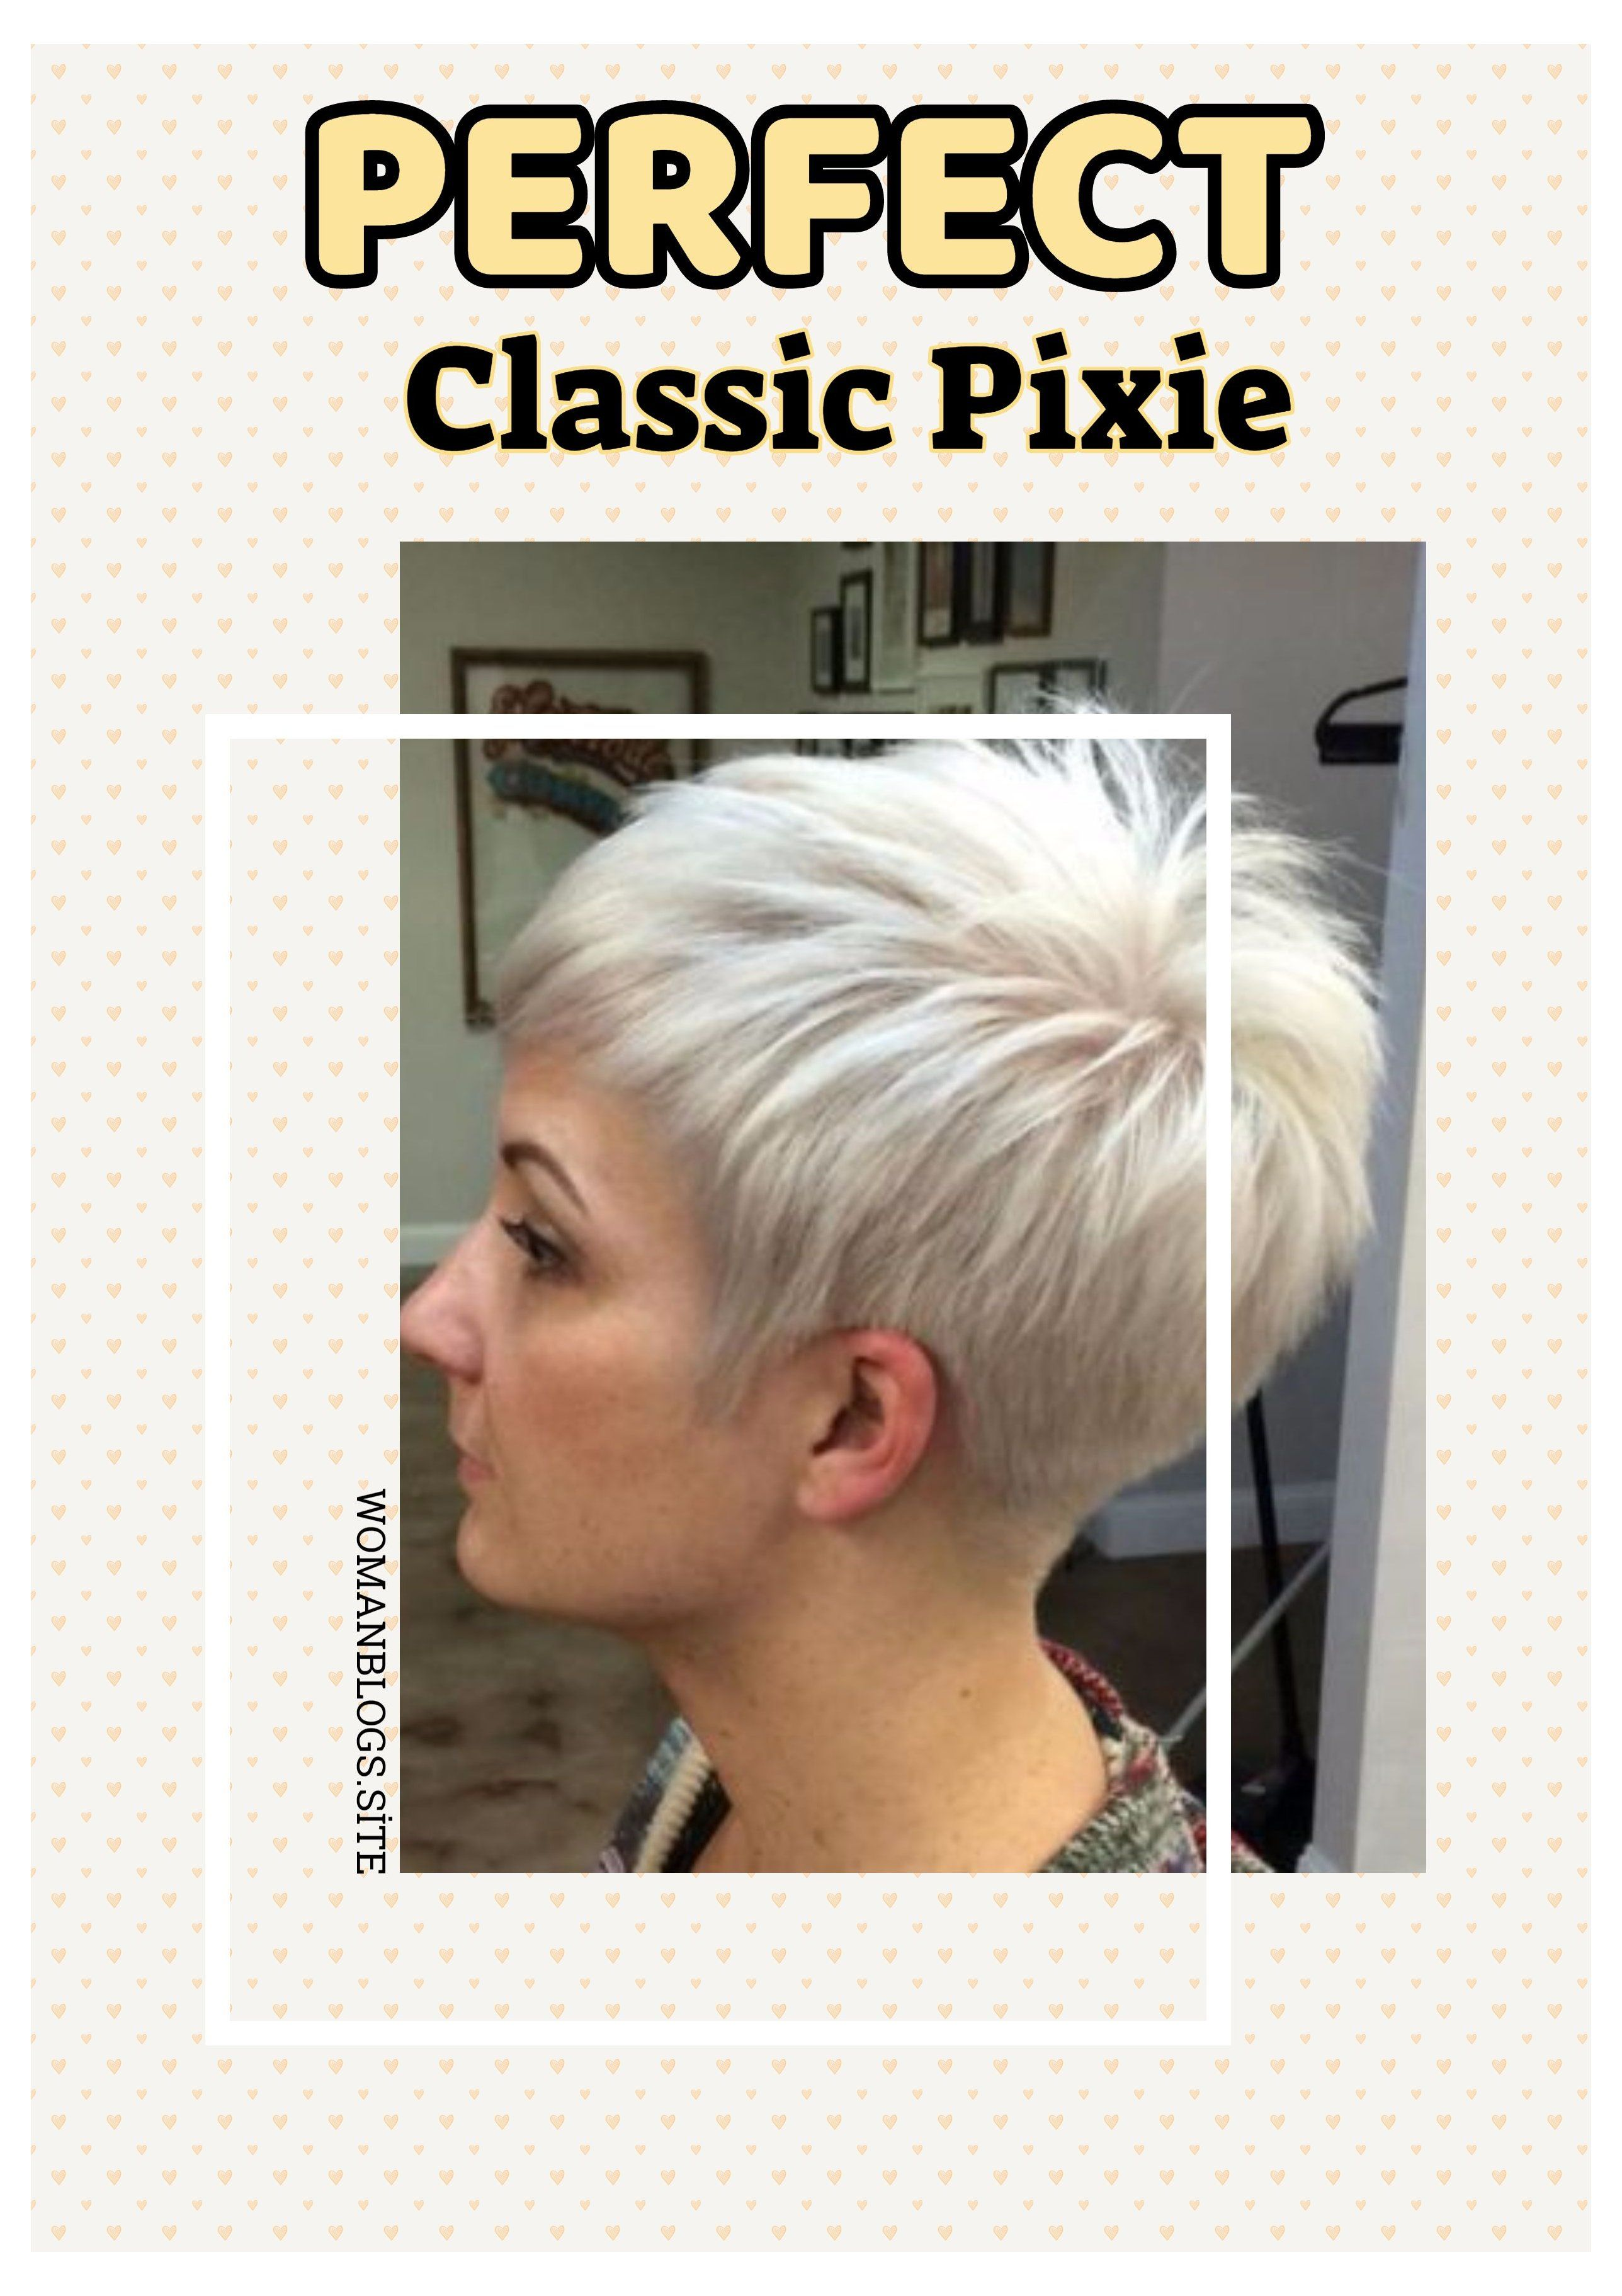 22 Most Beautiful Short Shaggy Assymetrical Edgy Pixie Classic Pixie Short Hair In 2021 Pixie Haircut Styles Pixie Haircut For Round Faces Edgy Pixie Haircuts